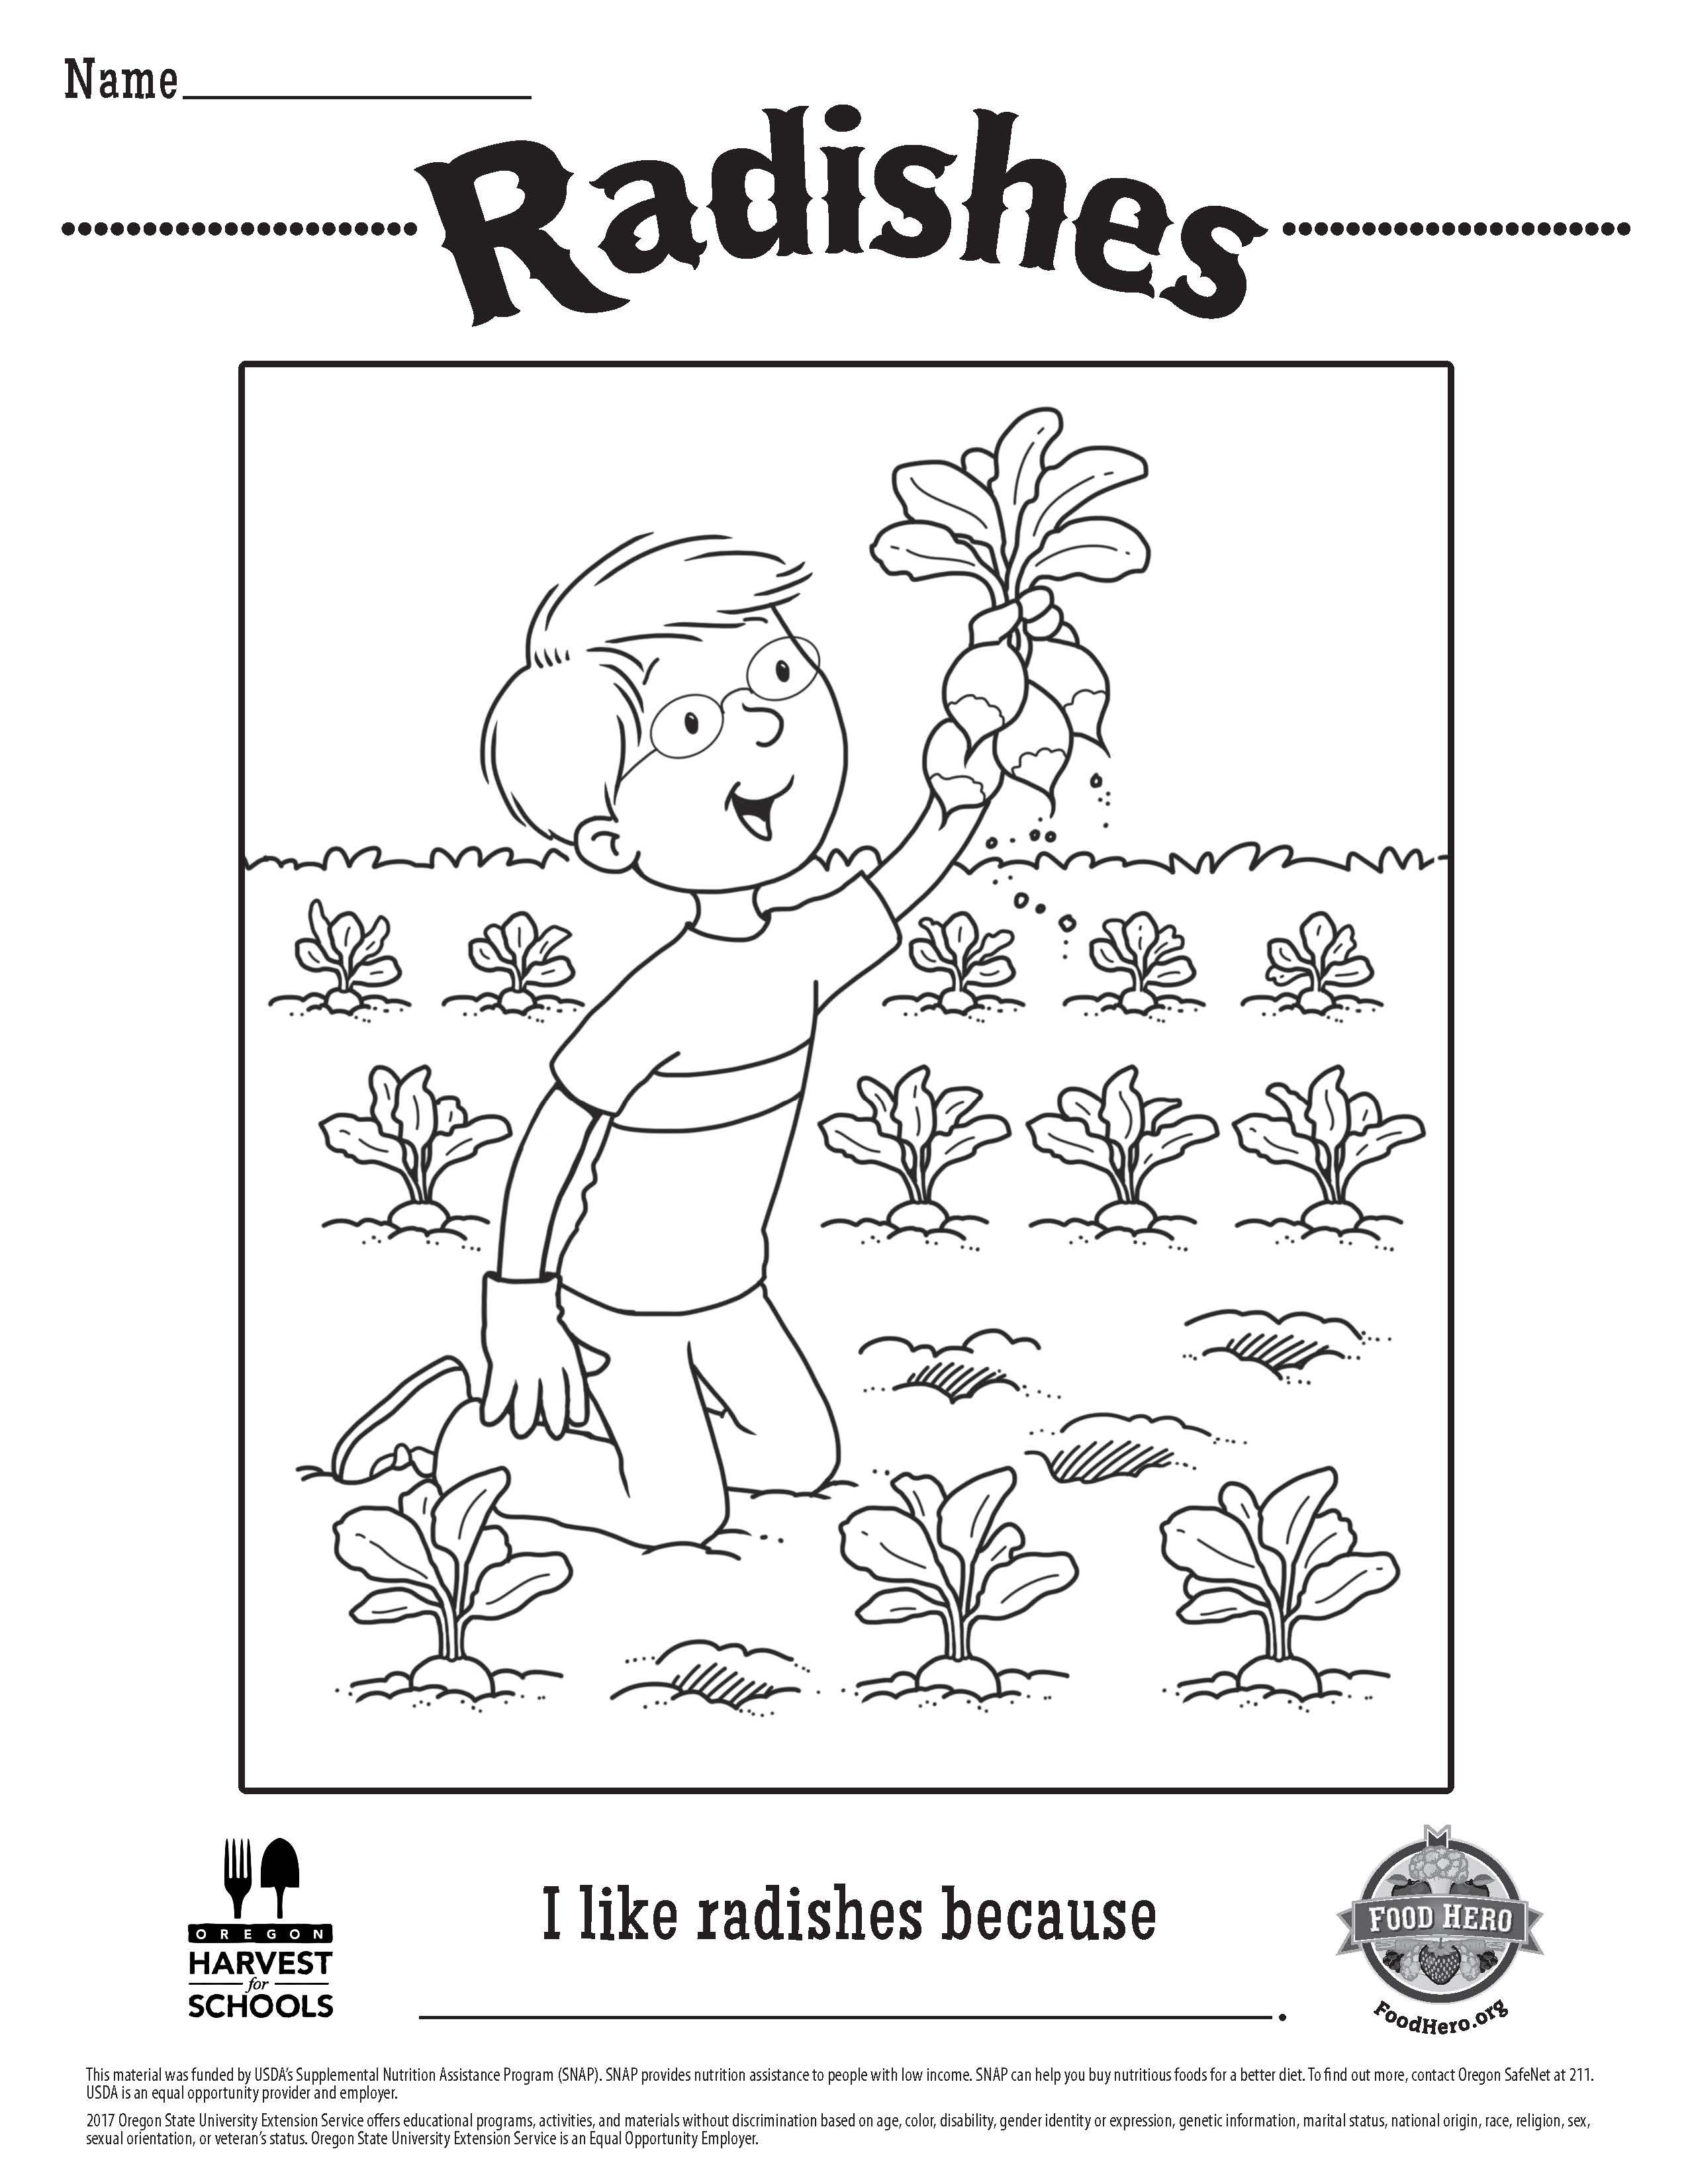 Radishes Food Hero Free Printable Children S Coloring